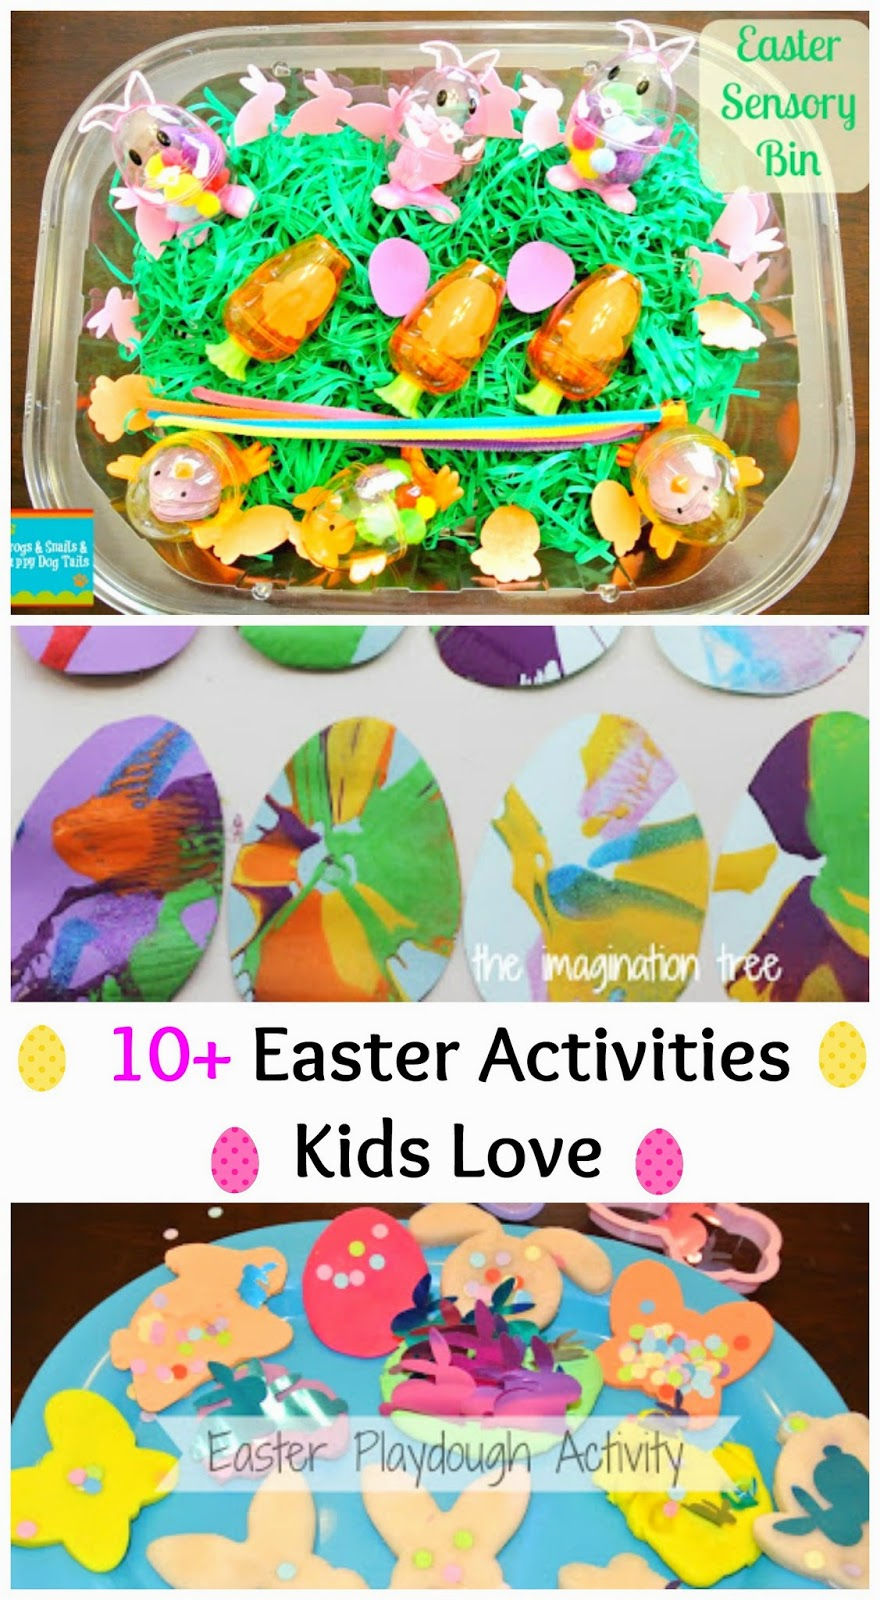 10+ Easter Activities Kids Love